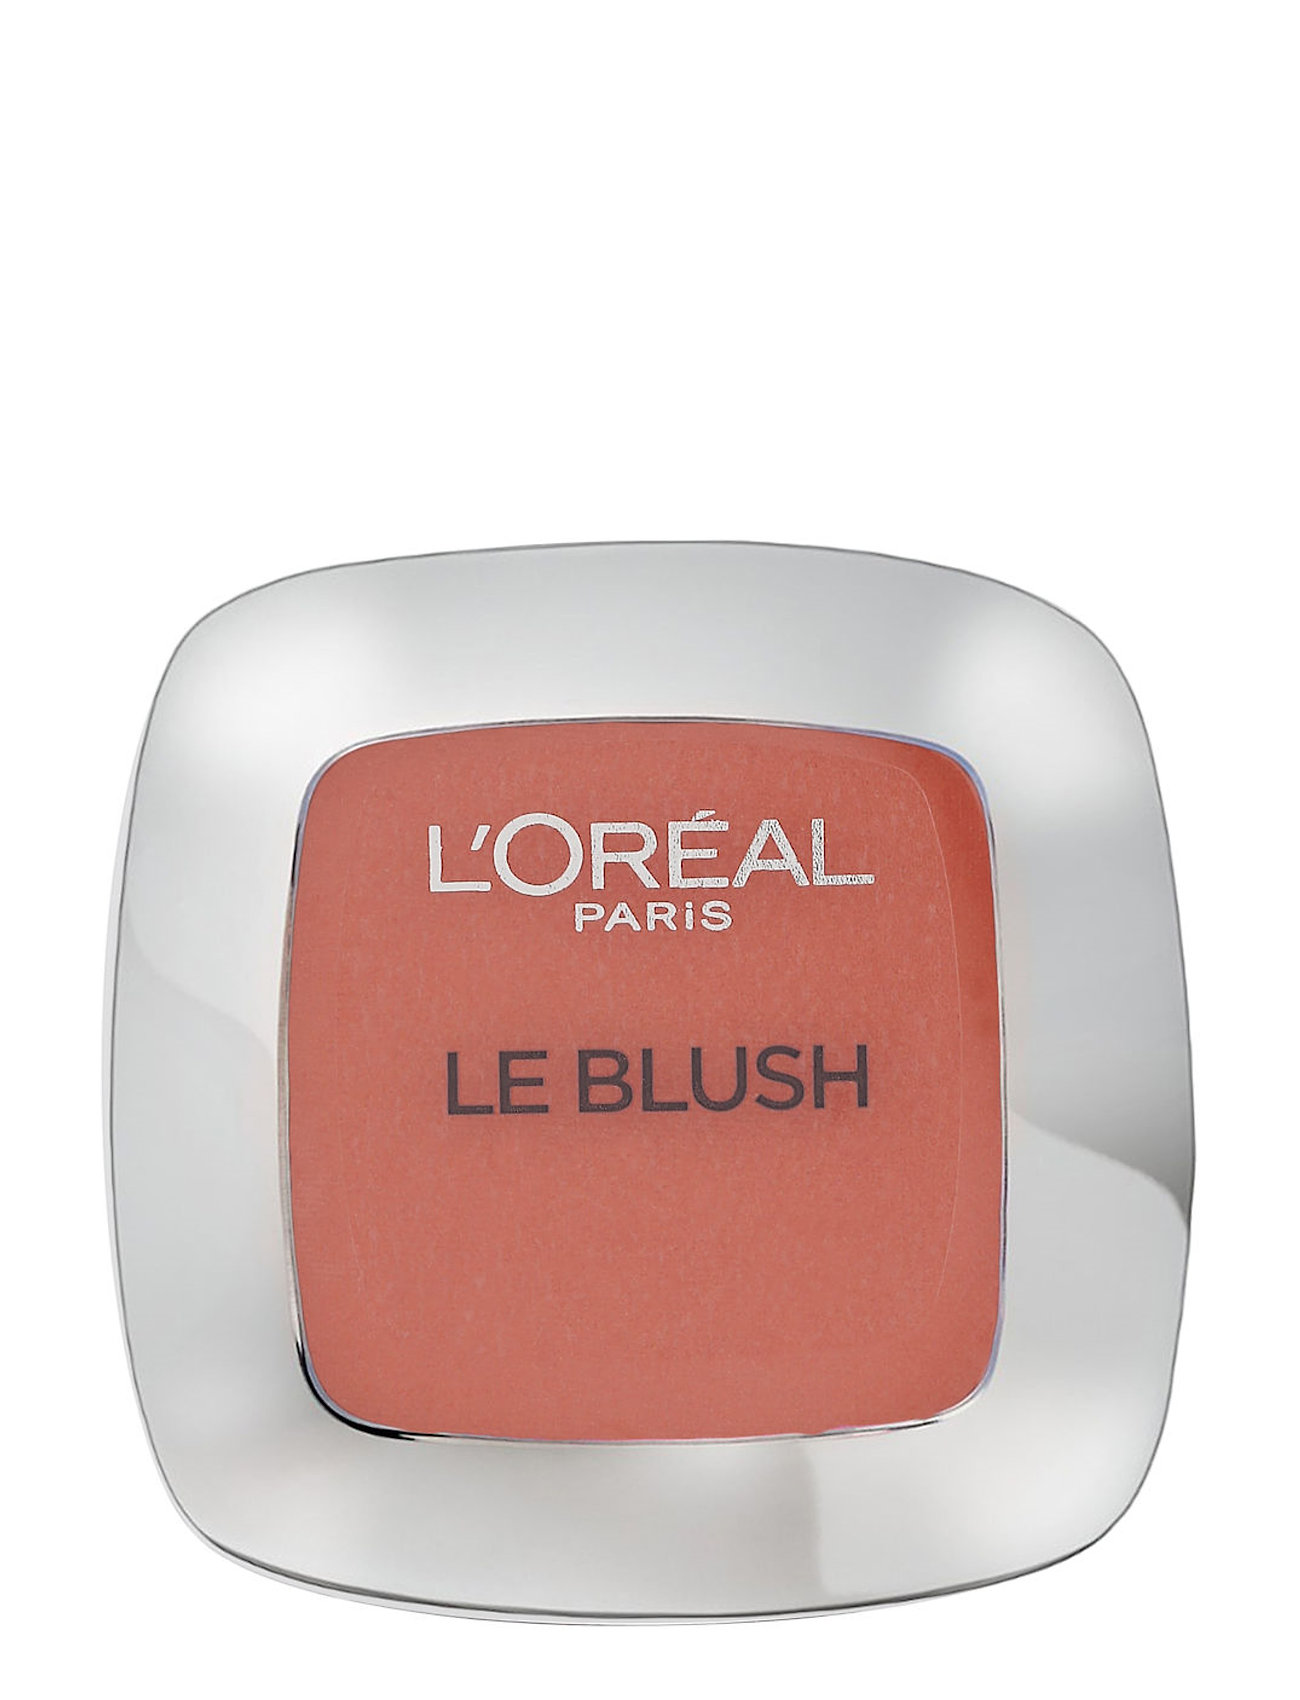 l'orã©al paris True match blush på boozt.com dk